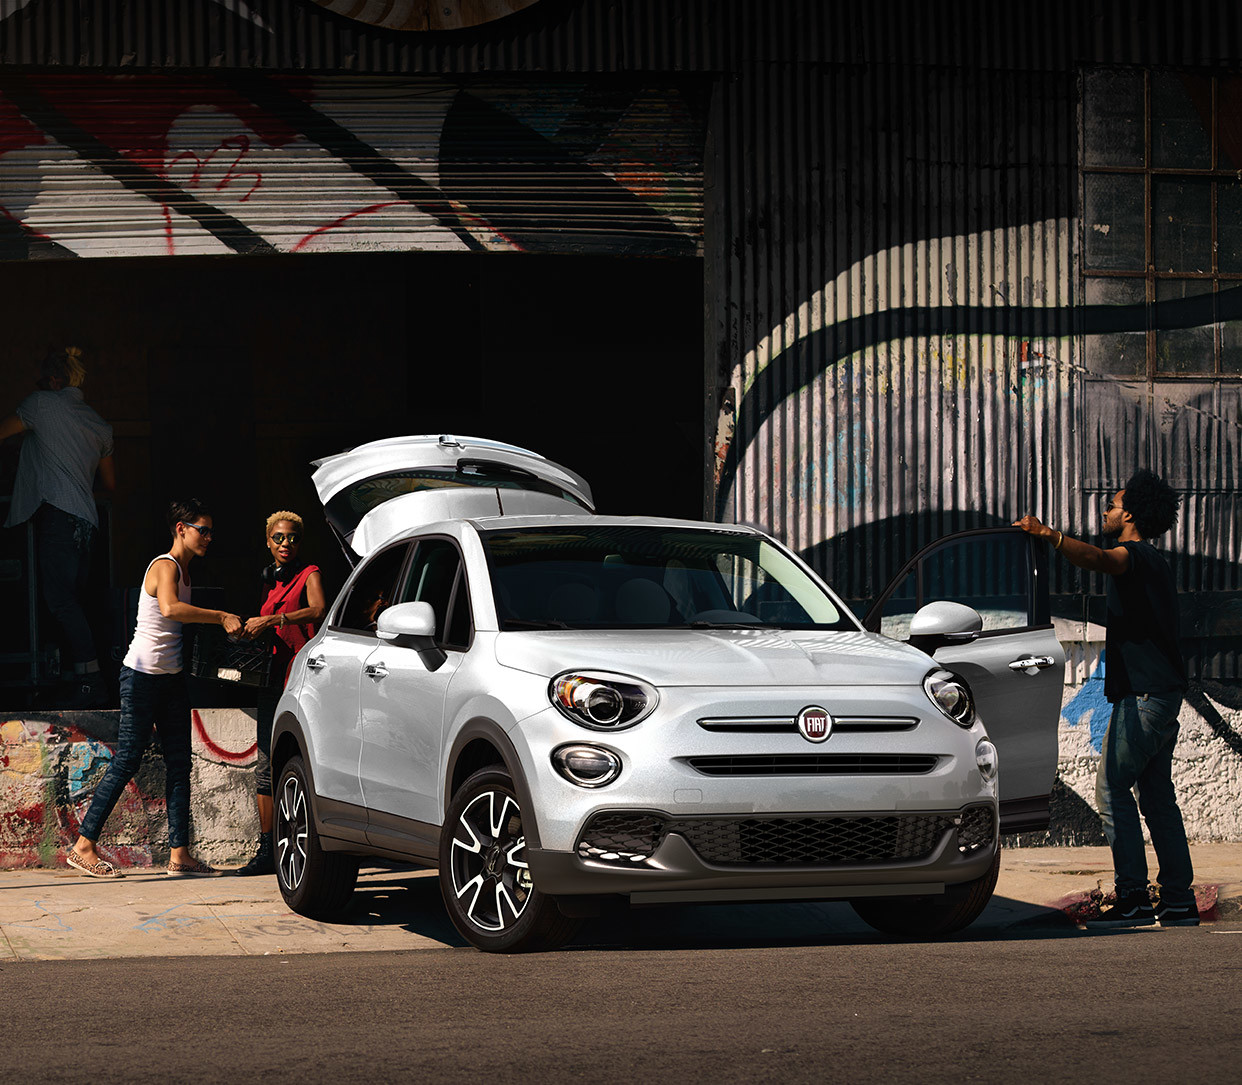 The white 2020 Fiat 500X parked at the loading bay while people loading cargo